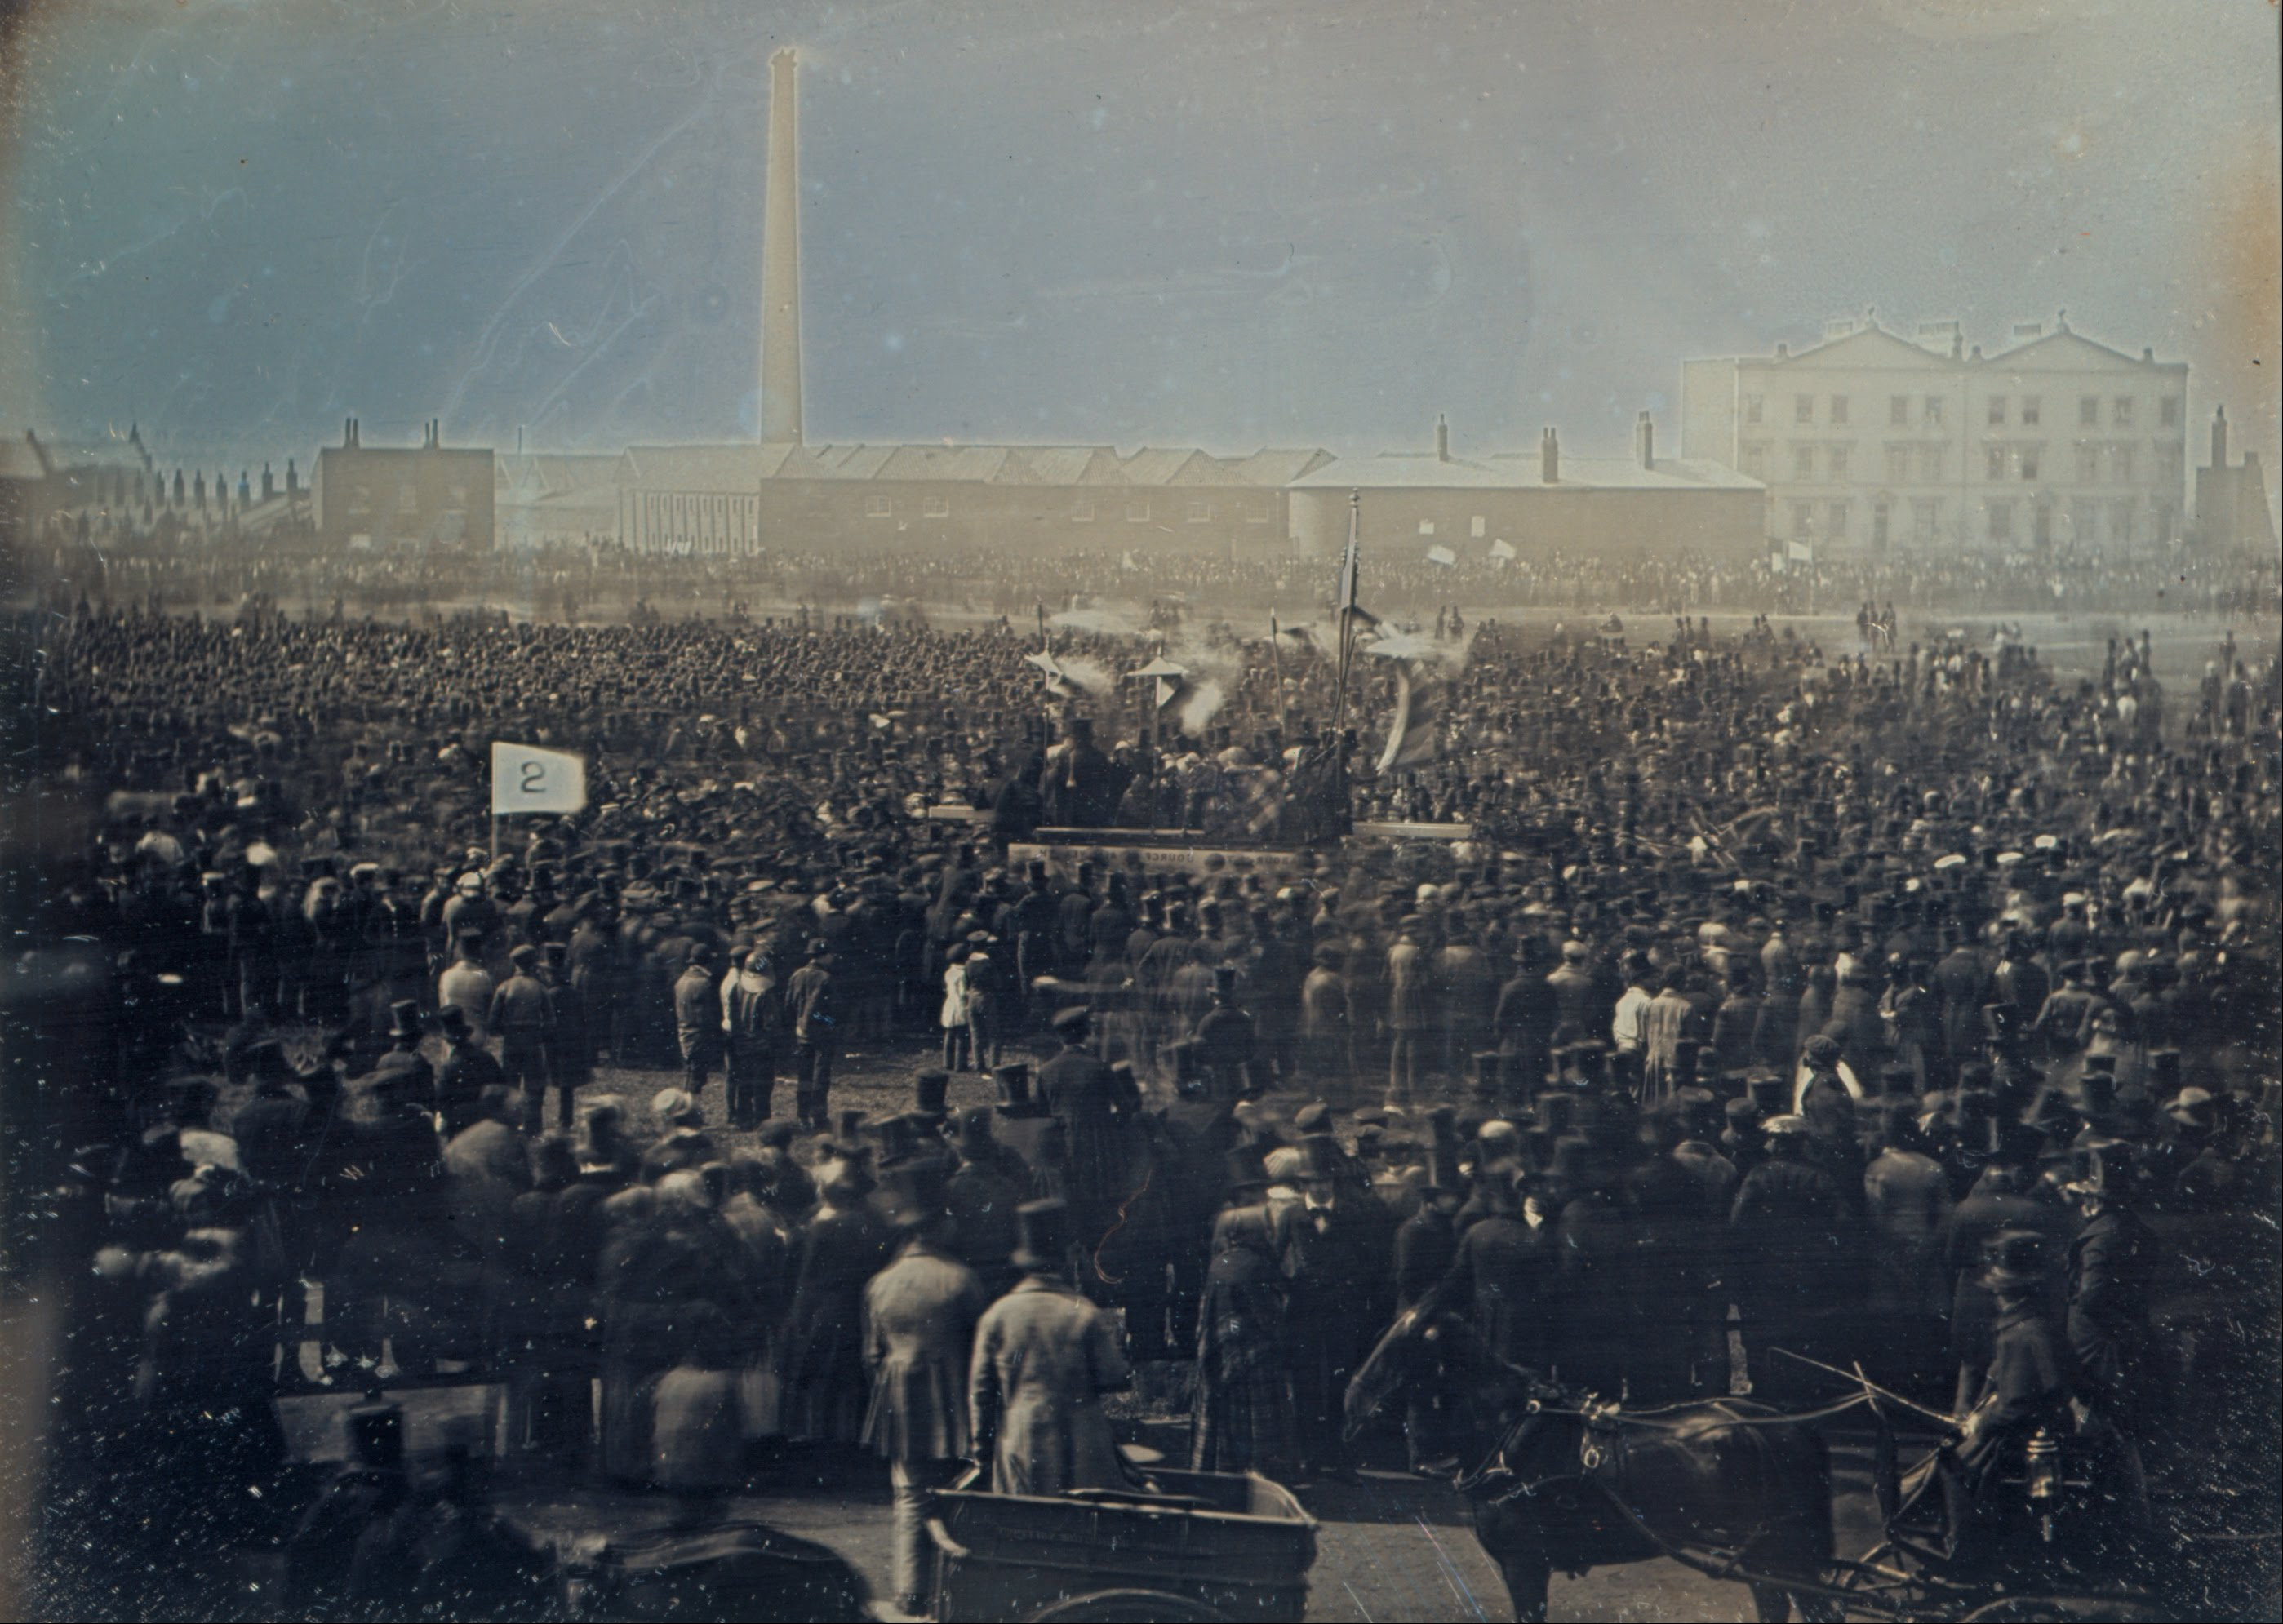 William_Edward_Kilburn_-_View_of_the_Great_Chartist_Meeting_on_Kennington_Common_-_Google_Art_Project